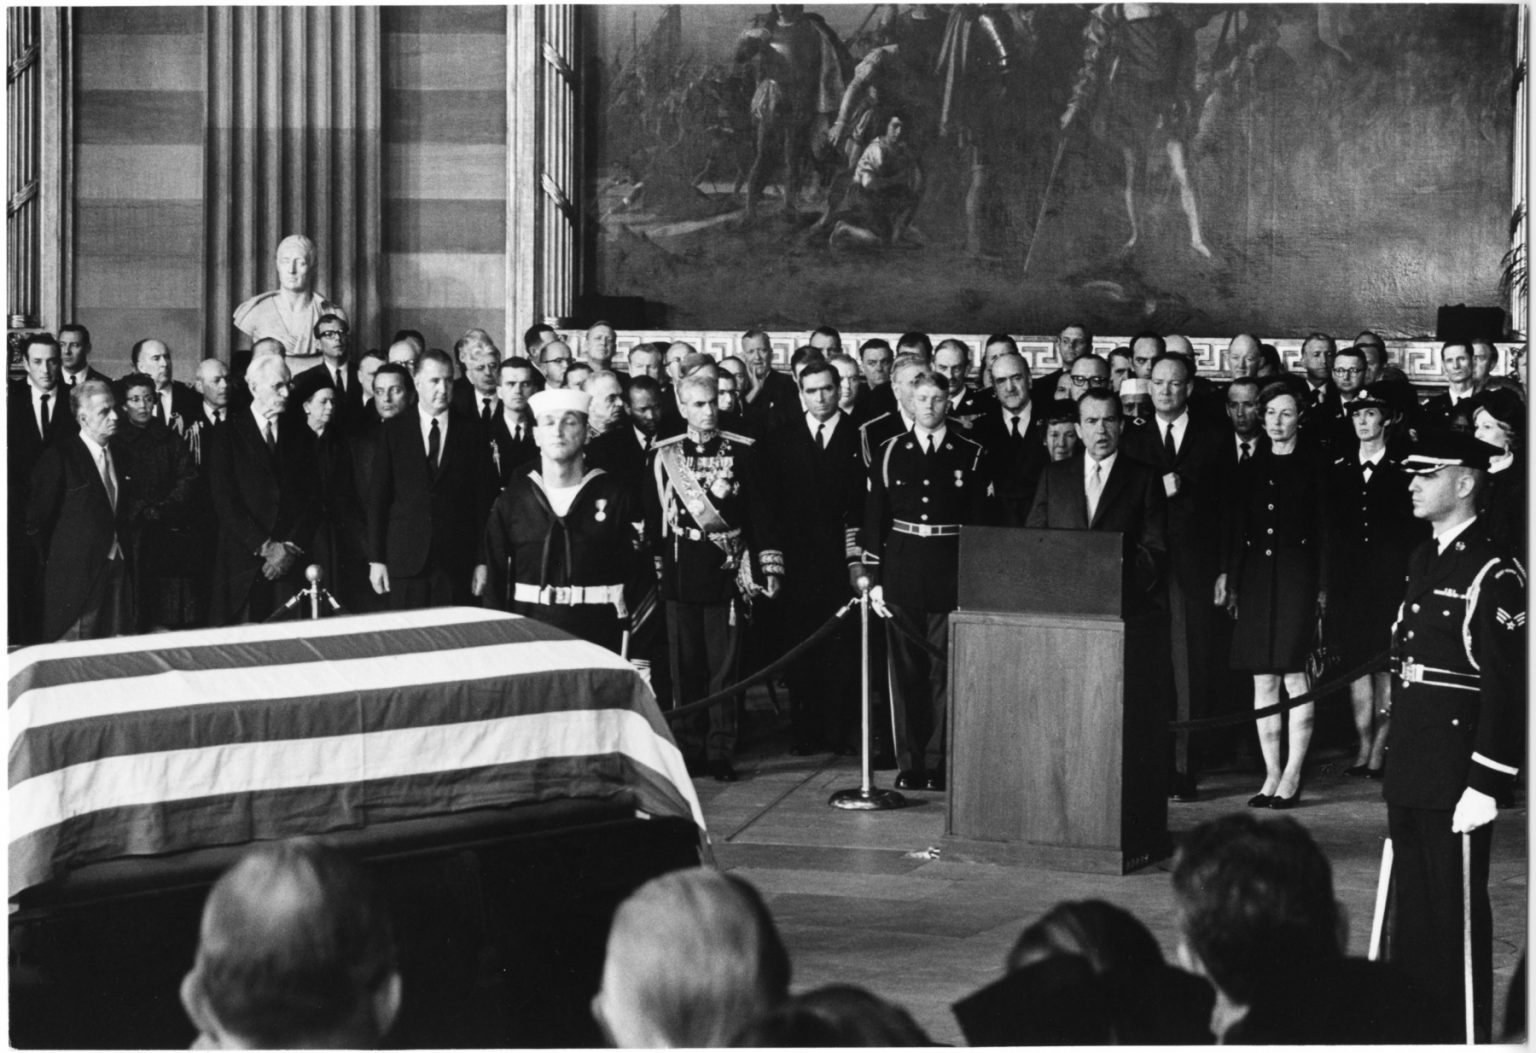 Richard Nixon eulogizes Dwight Eisenhower